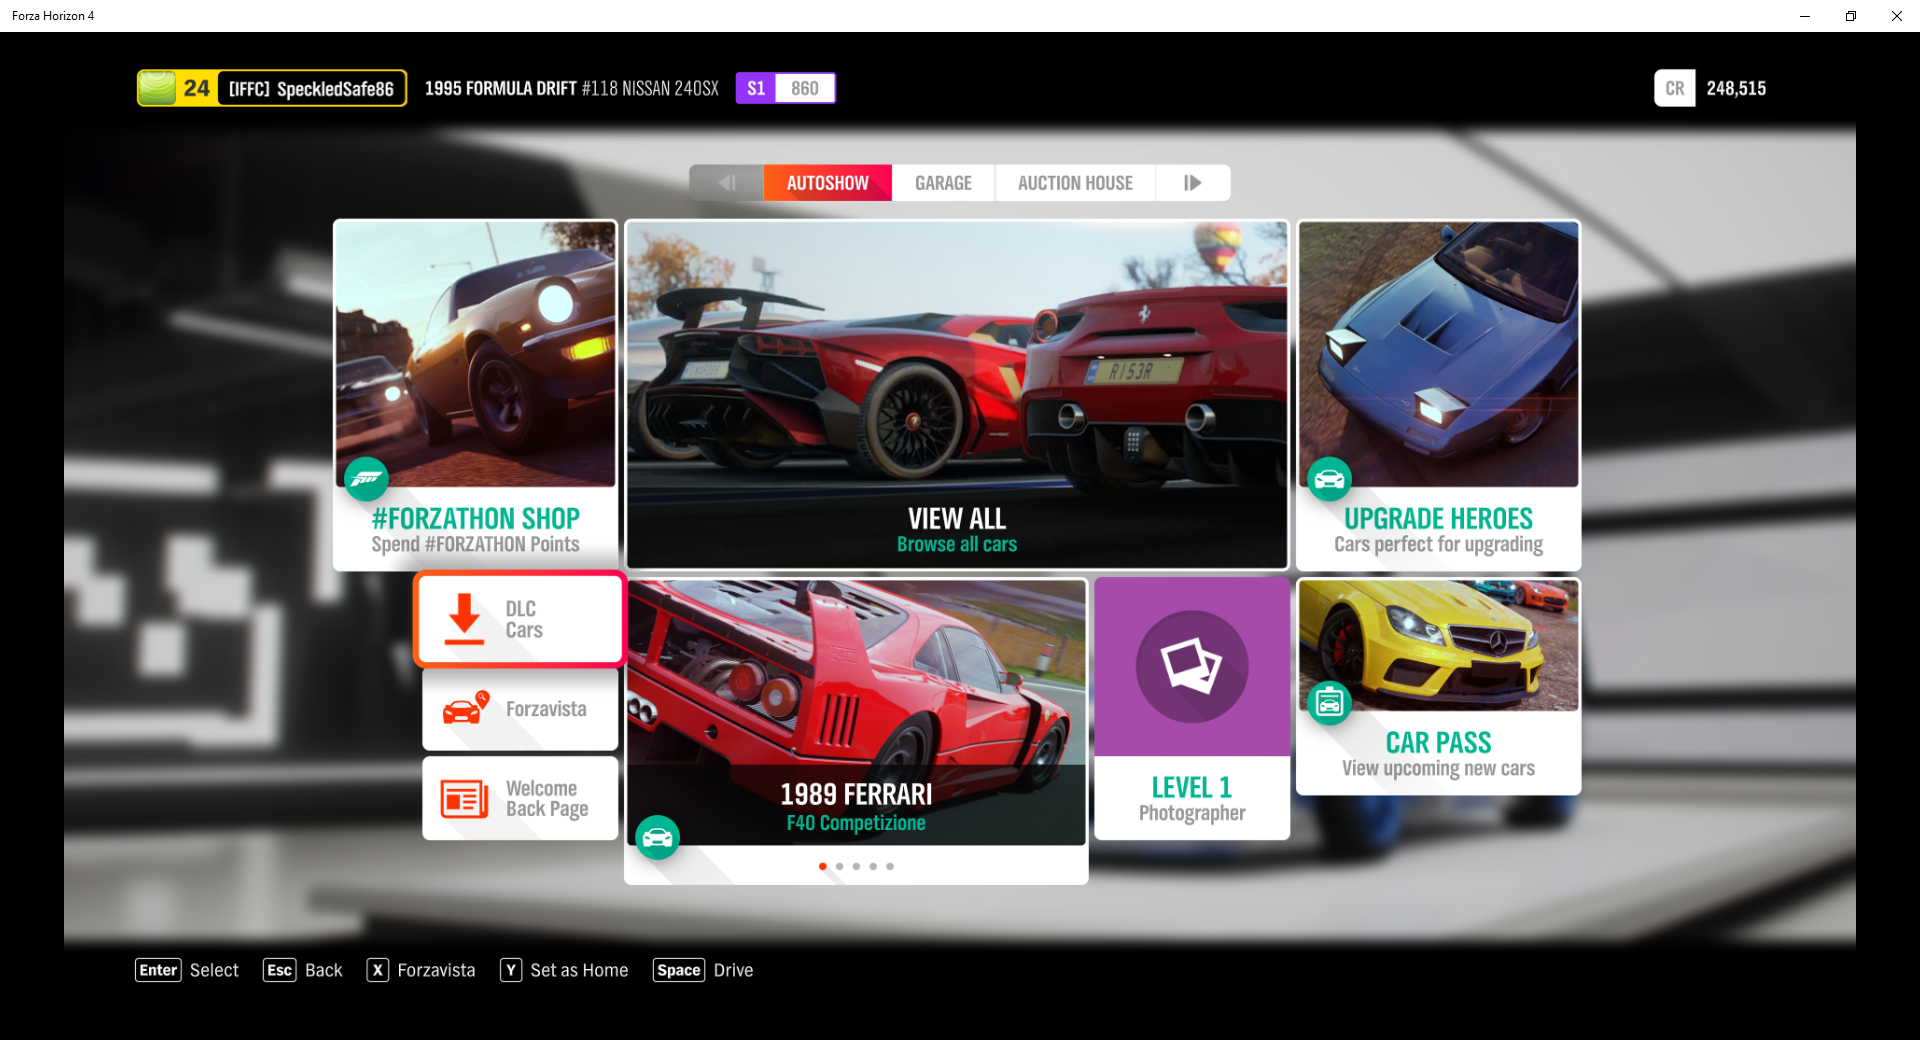 Forza Horizon 4: How To Redeem Cars In DLC Packs